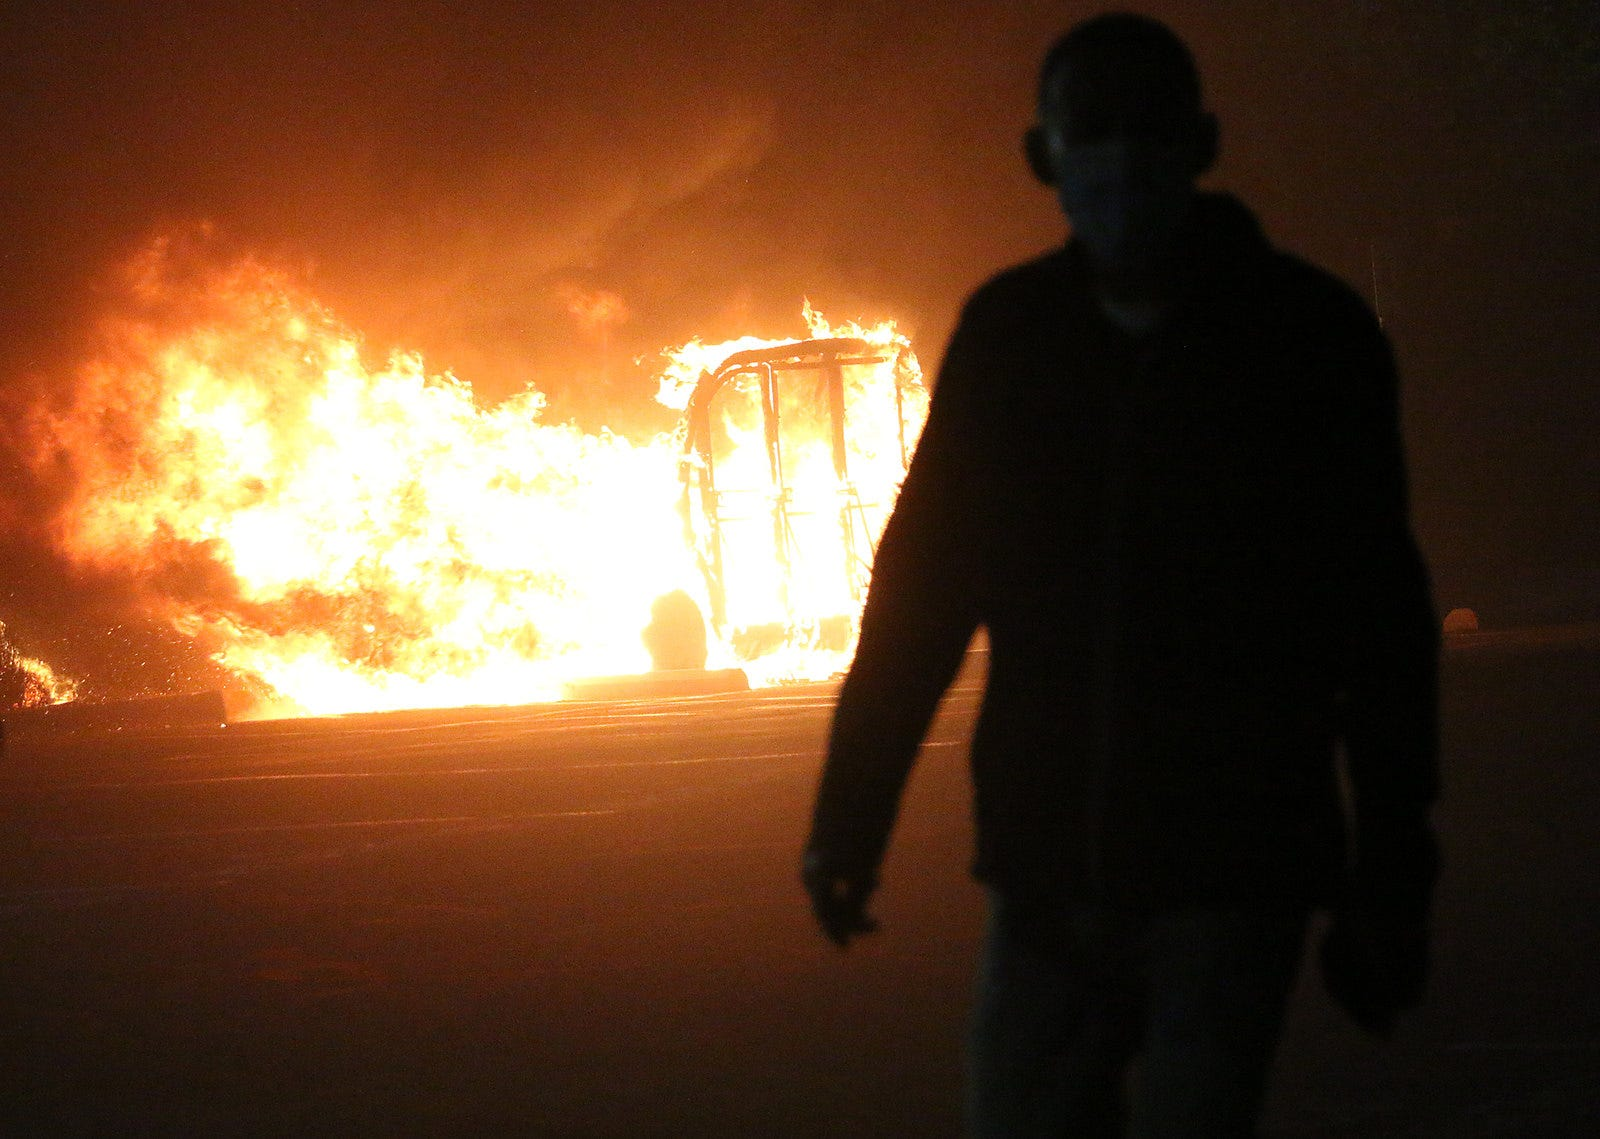 A protester walks in front of a burning vehicle during the Black Lives Matter rally and civil unrest in Reno on May 30, 2020.